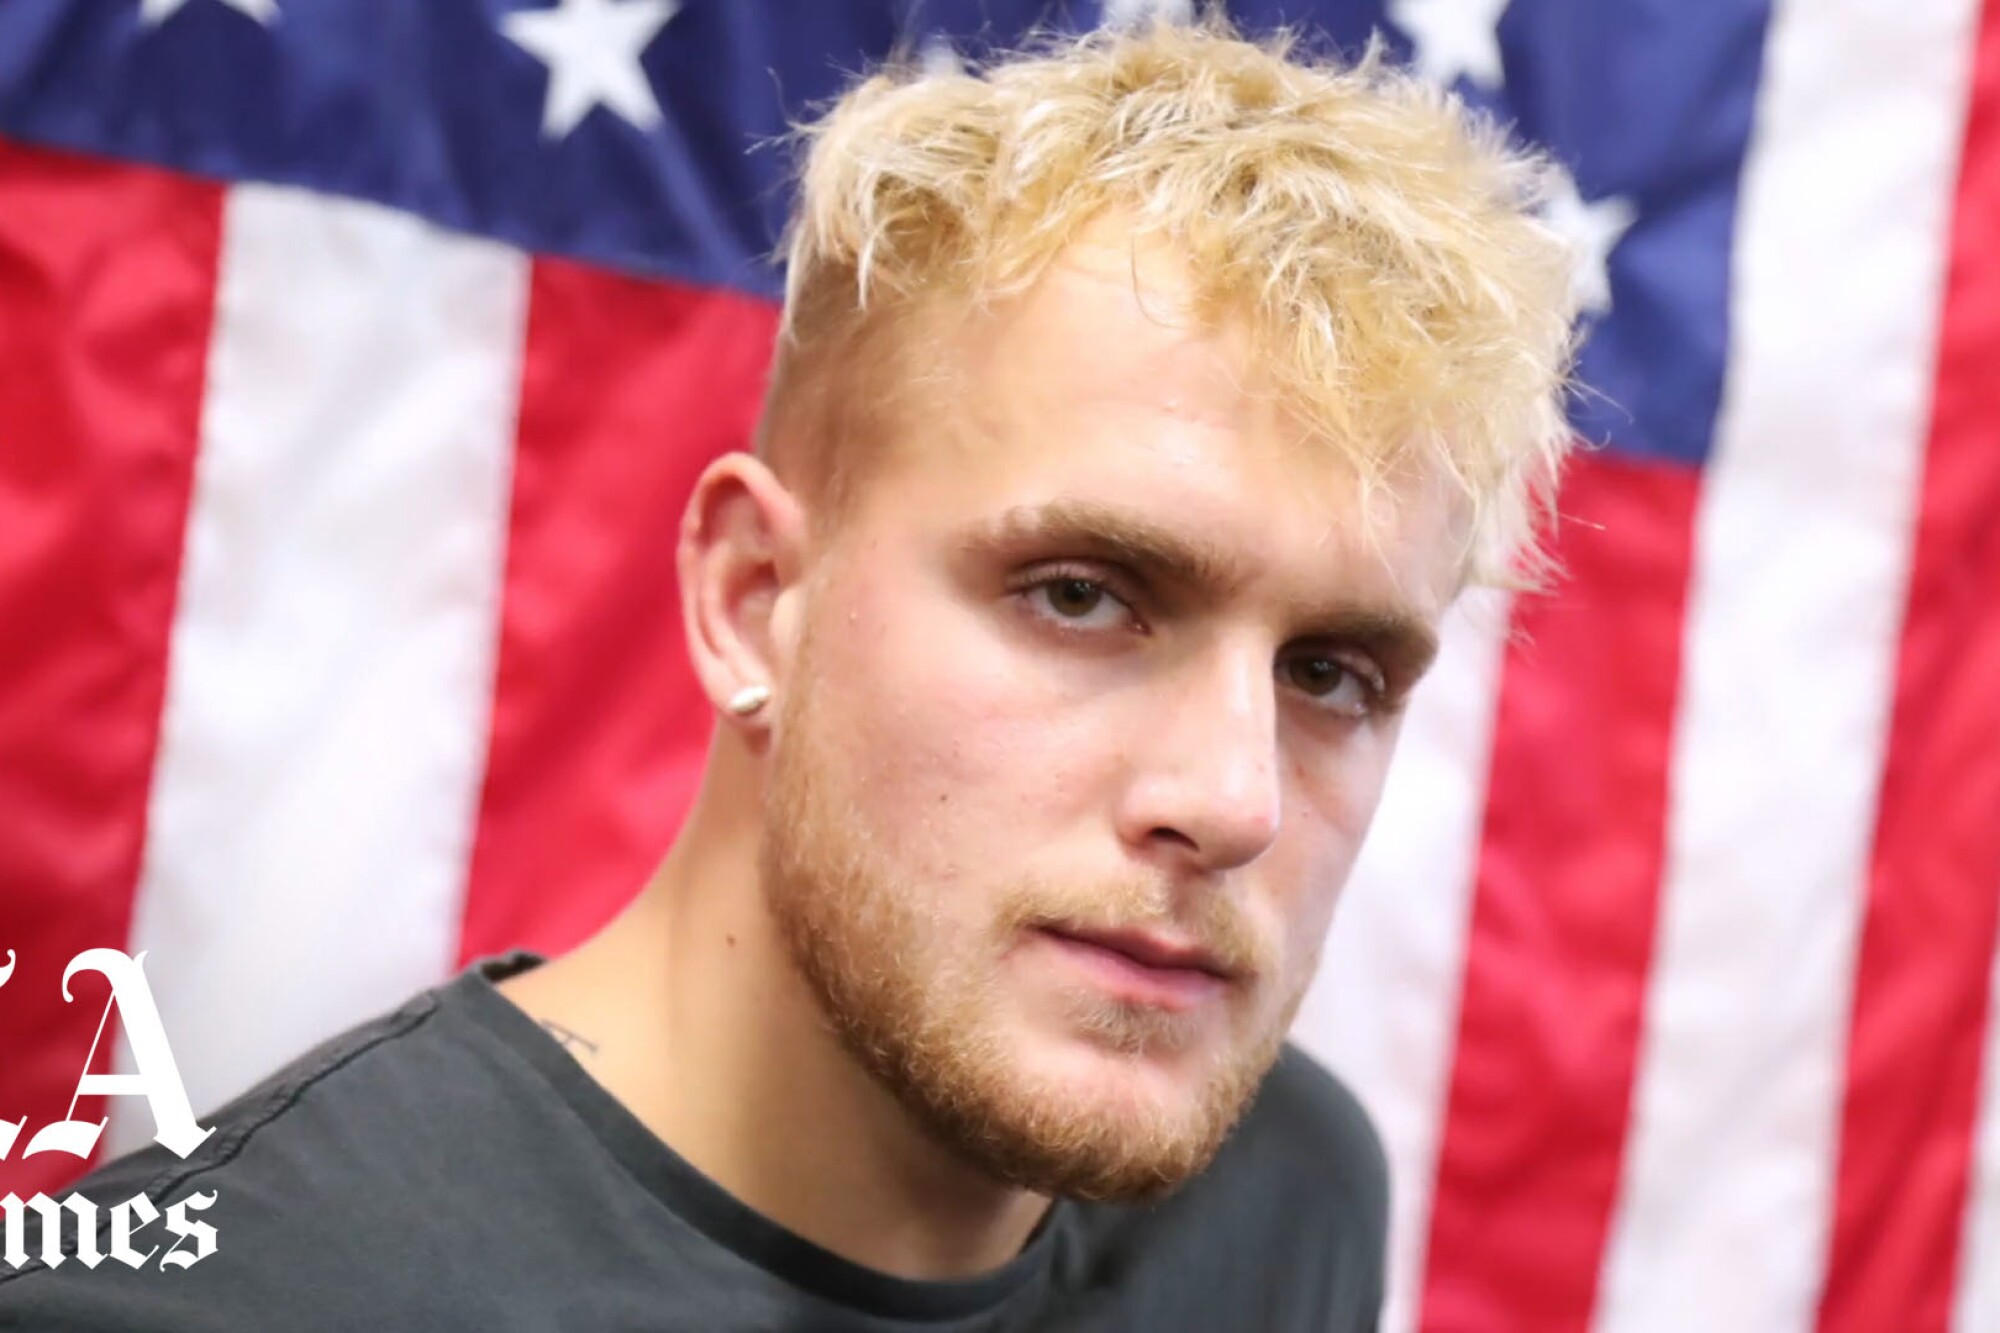 HOLLYWOOD, CALIFORNIA - OCTOBER 22: Jake Paul attends Logan Paul Workout Showcase at Wild Card Boxing Club.